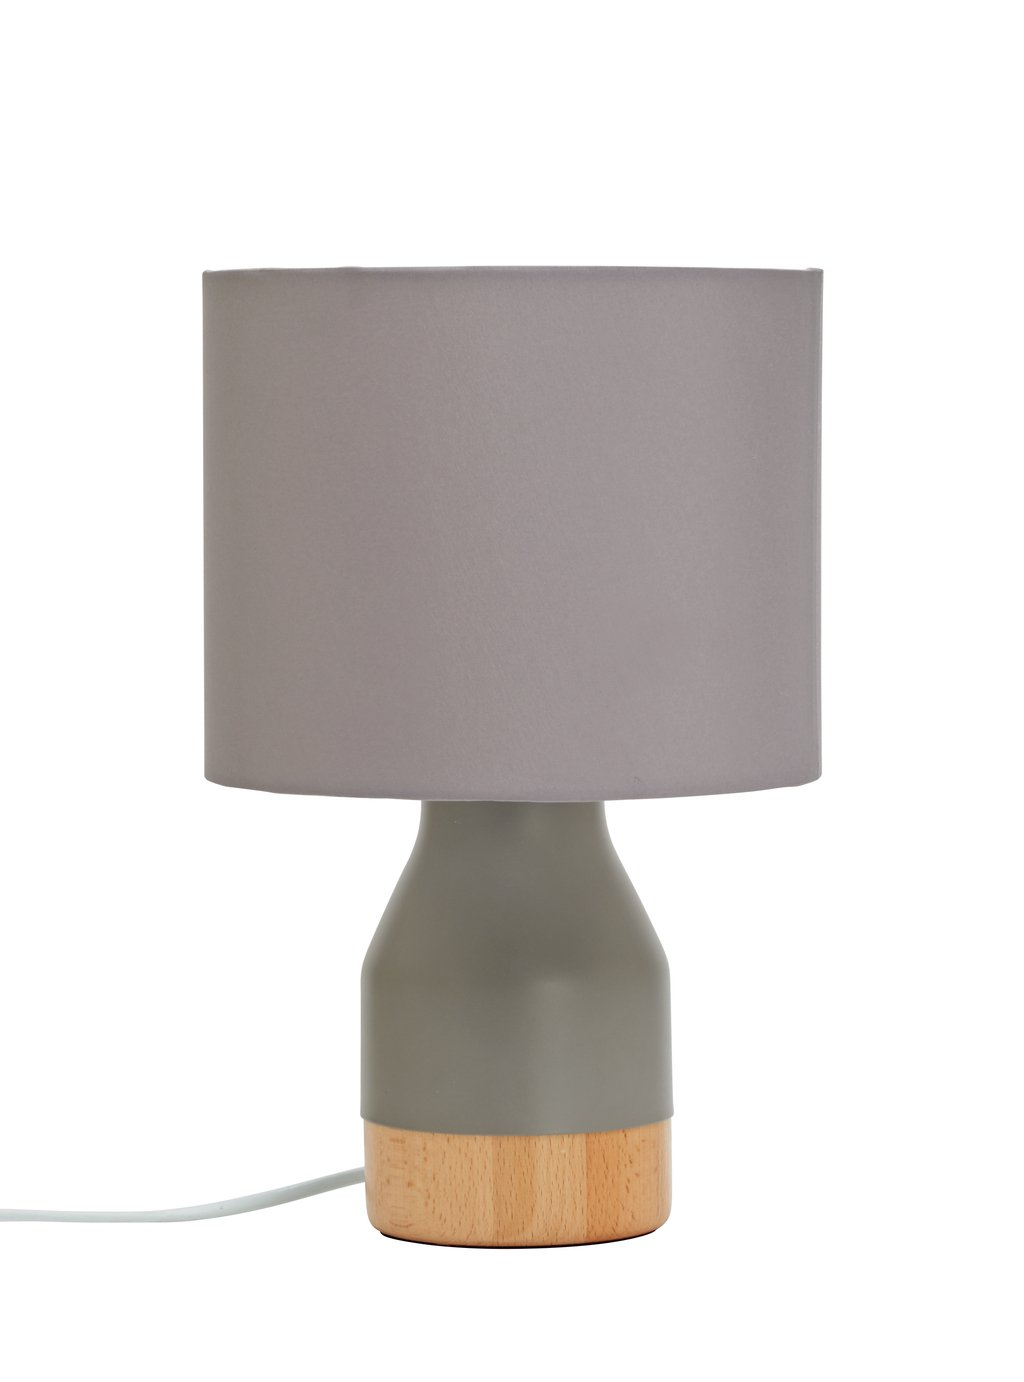 Argos Home Finbar Table Lamp - Grey & Wood